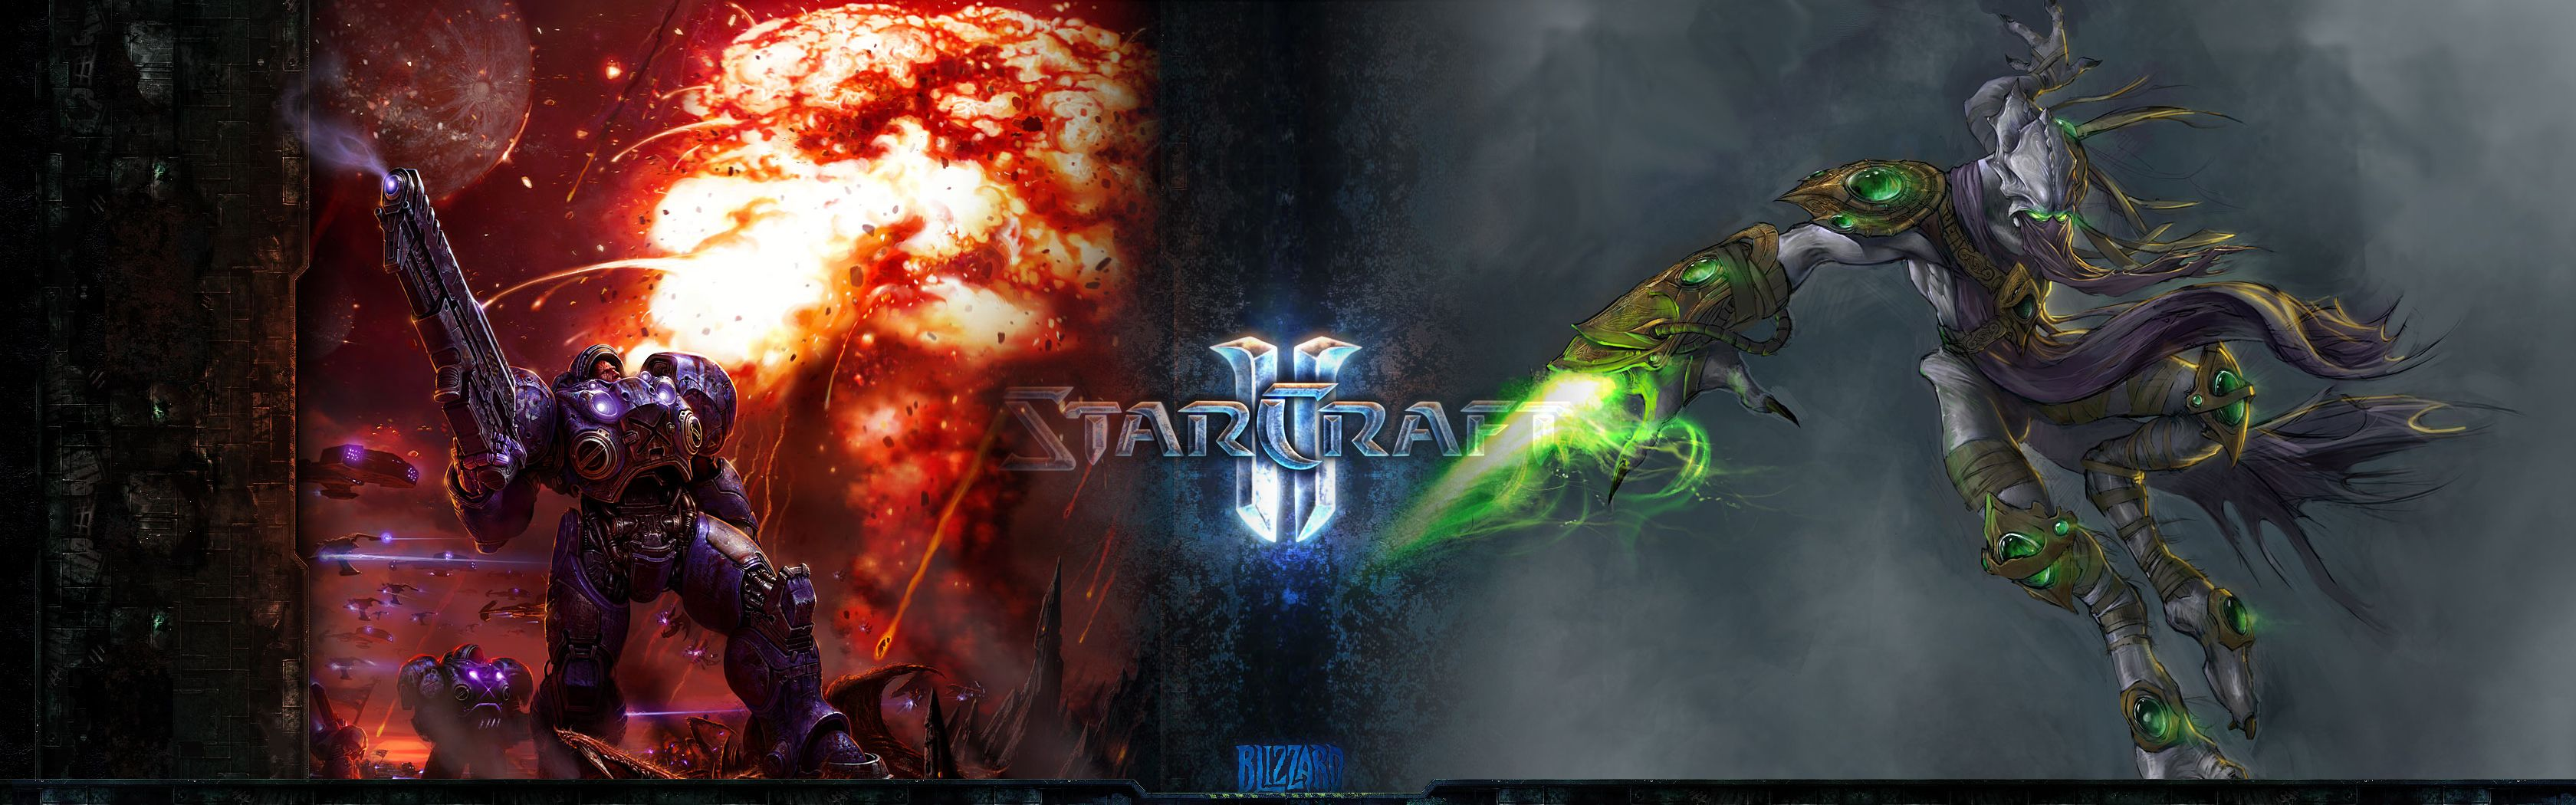 Starcraft Dual Monitor Wallpaper – Terrans and Protoss